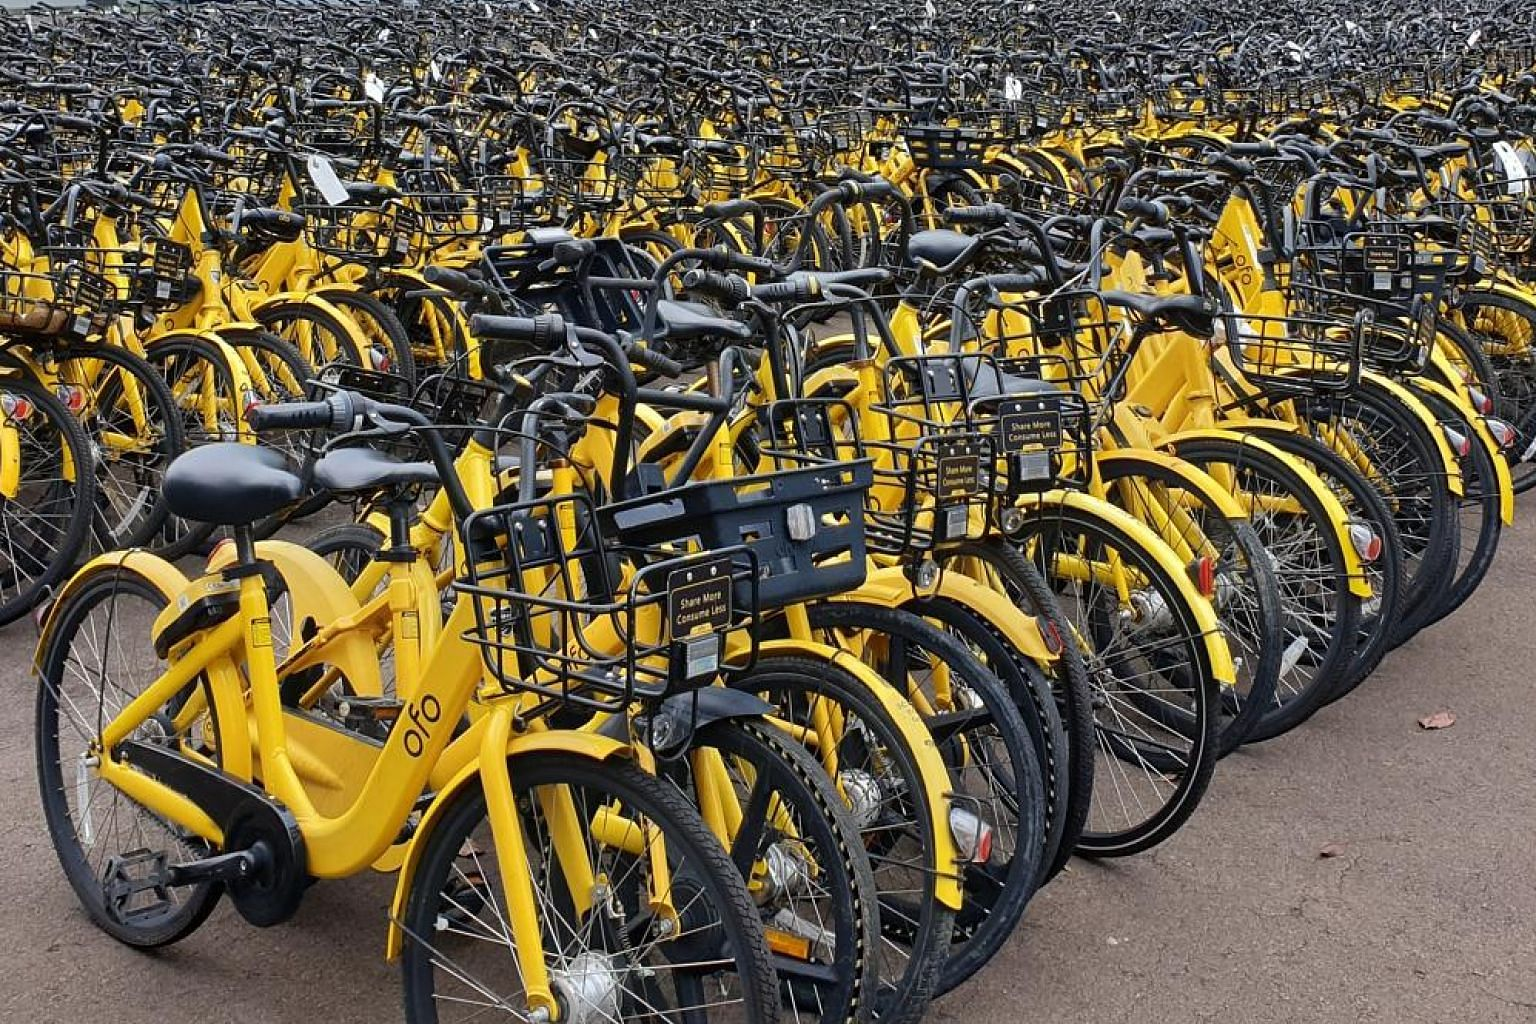 The $29,995 collected by the Land Transport Authority from the sale of 5,999 bicycles will be donated to charity. LTA had found these bikes indiscriminately parked or abandoned around Singapore.